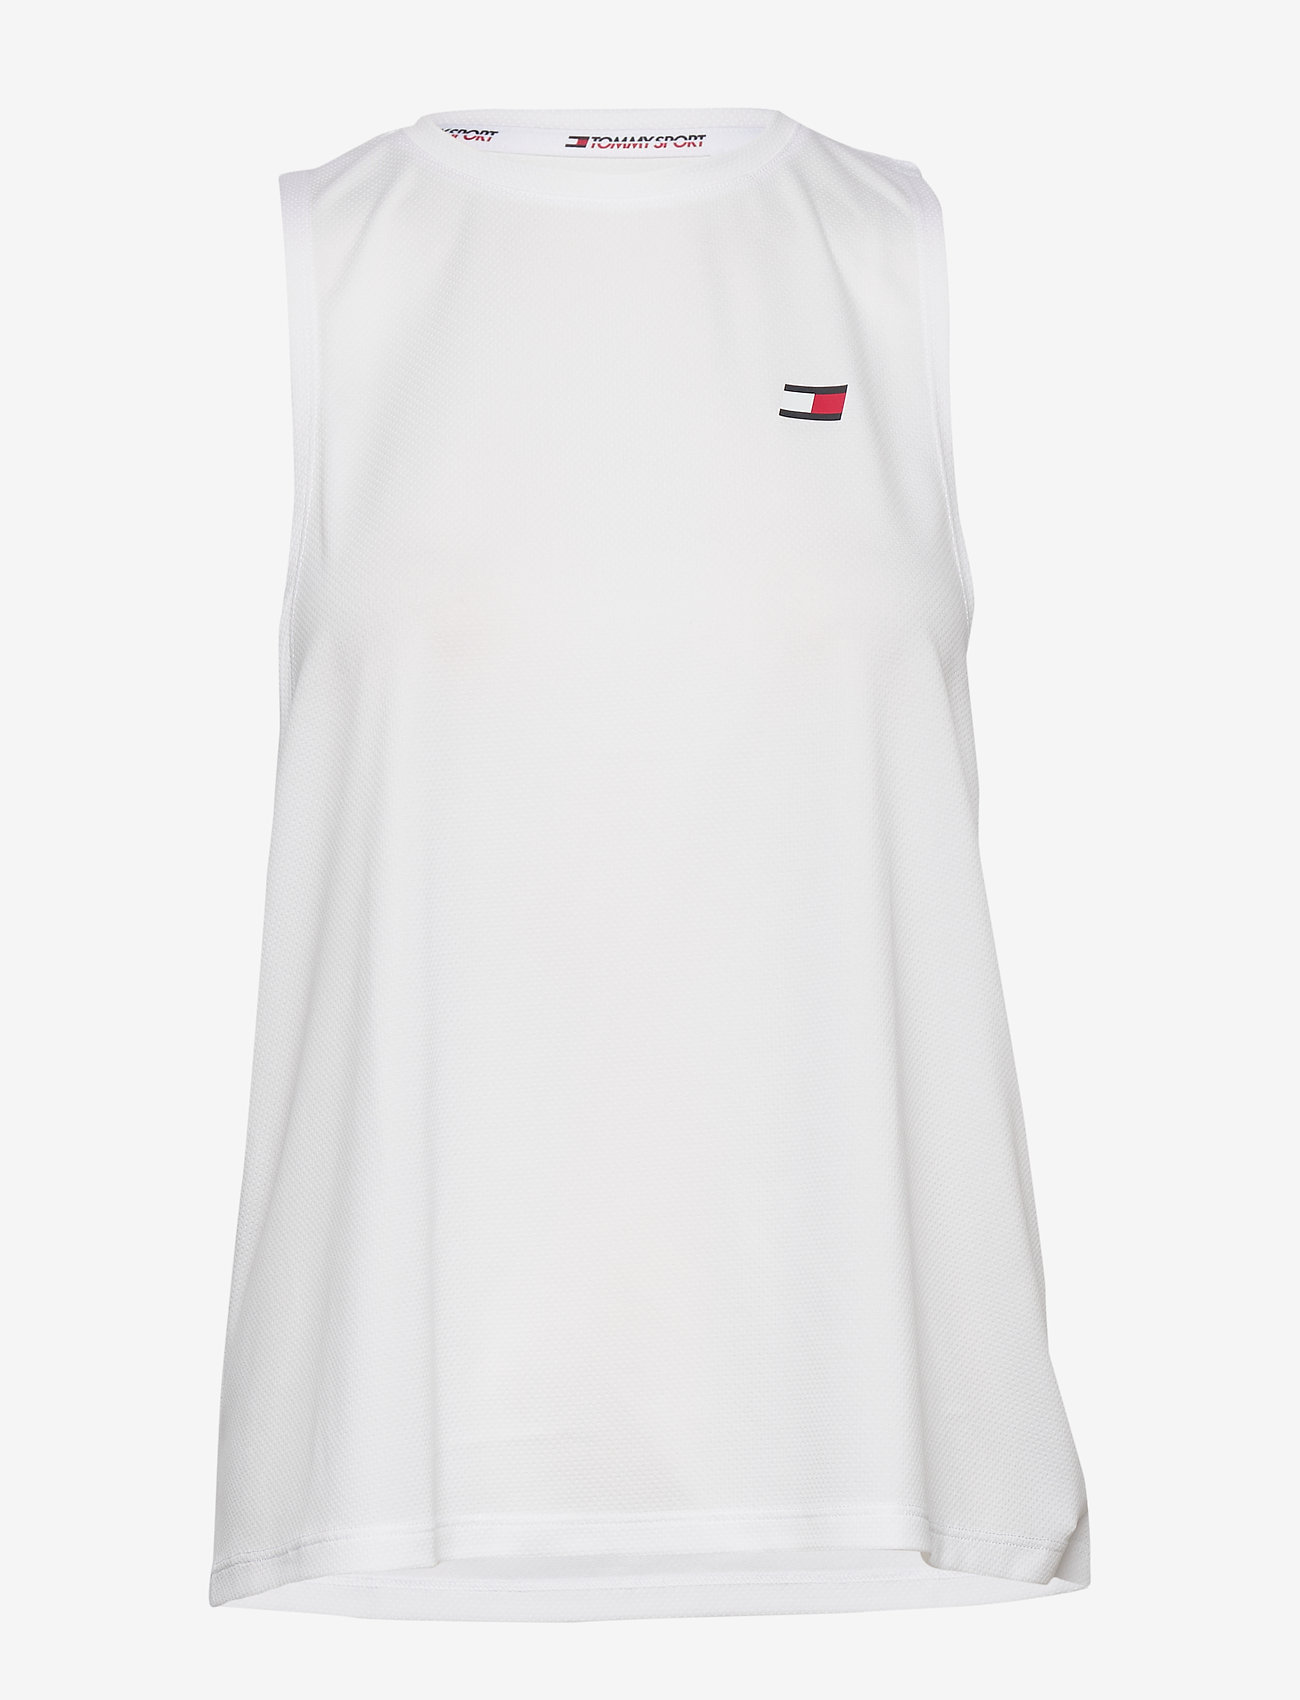 Tommy Sport - PERFORMANCE PRINTED TANK TOP - tank tops - white - 0